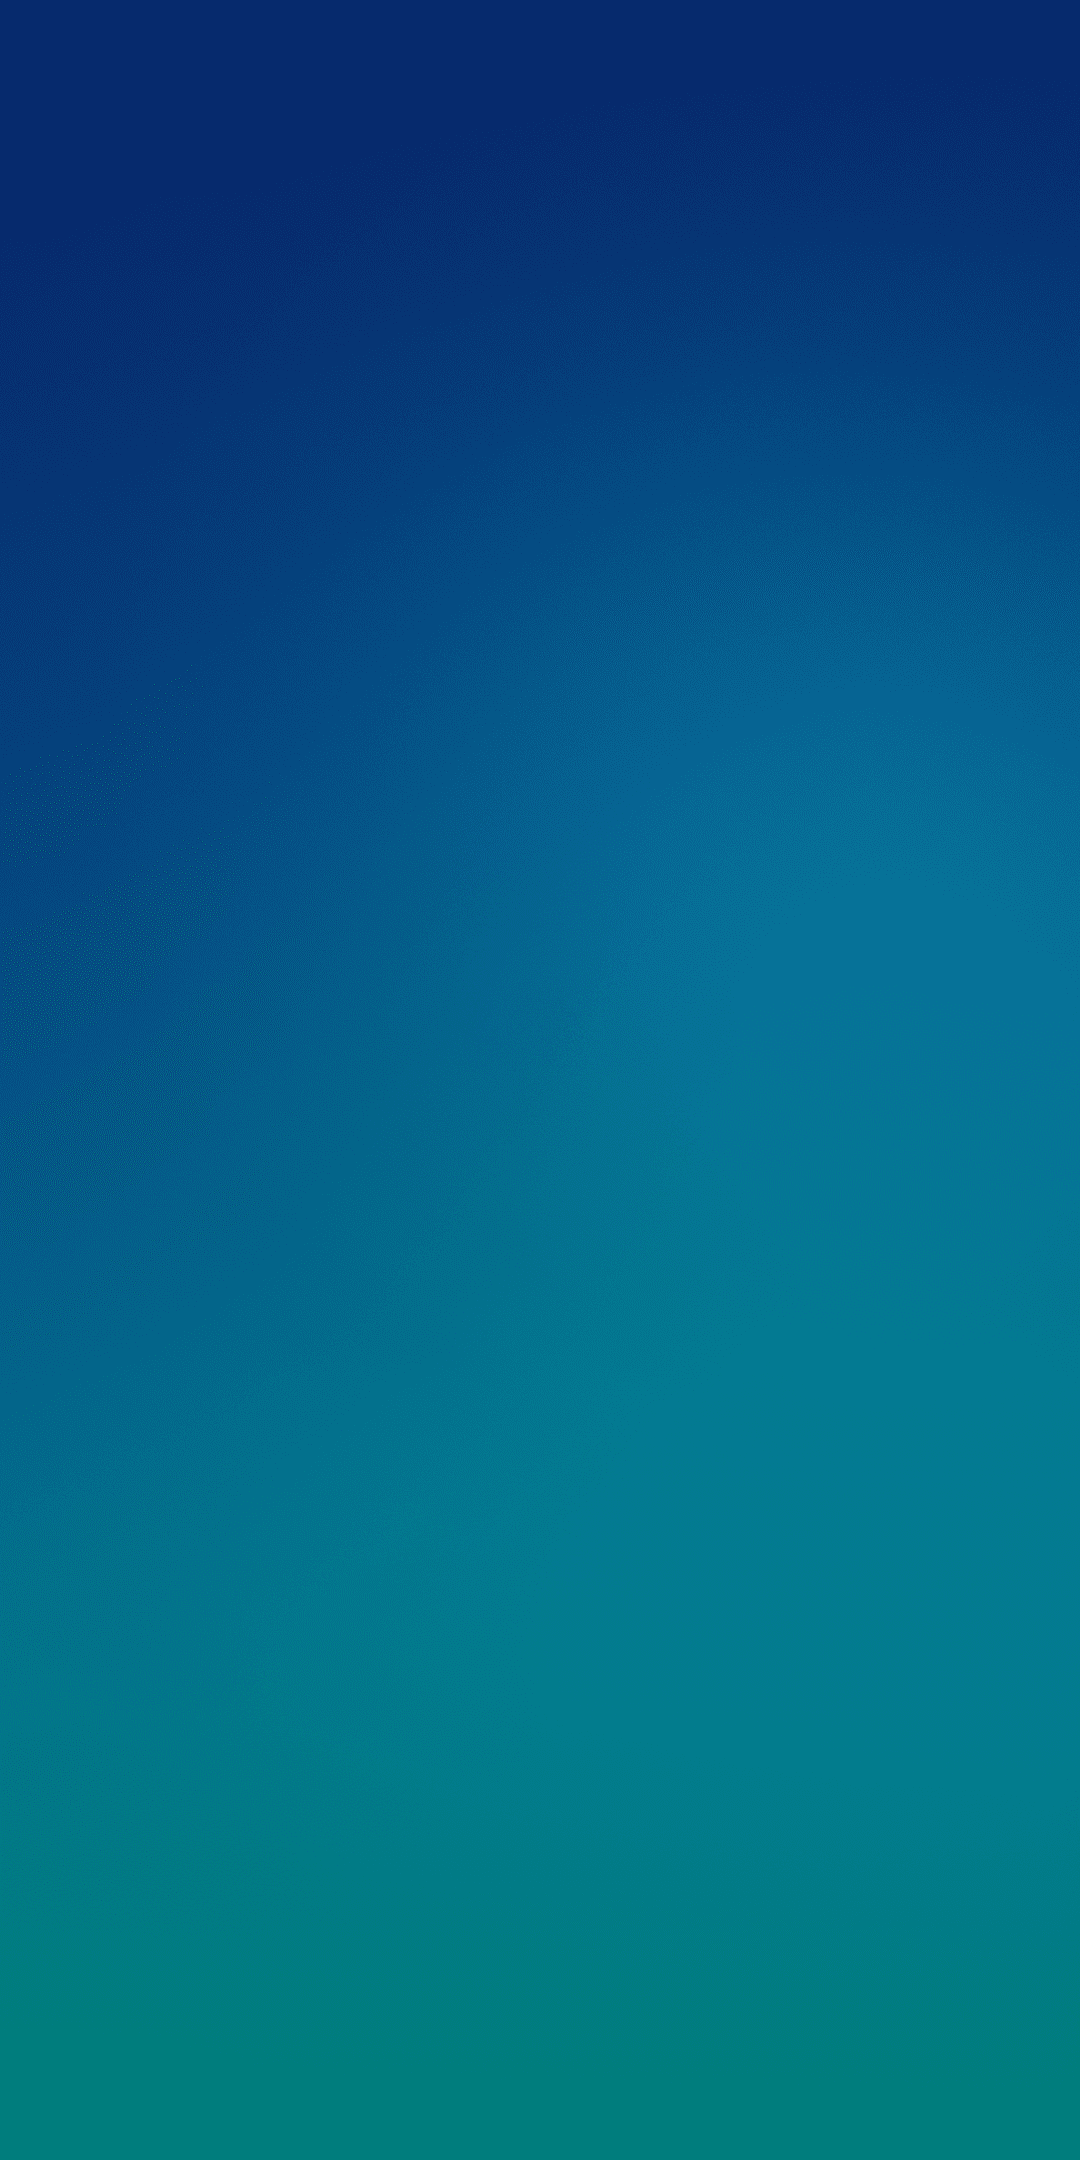 Lenovo S5 Stock Wallpapers | Download 21